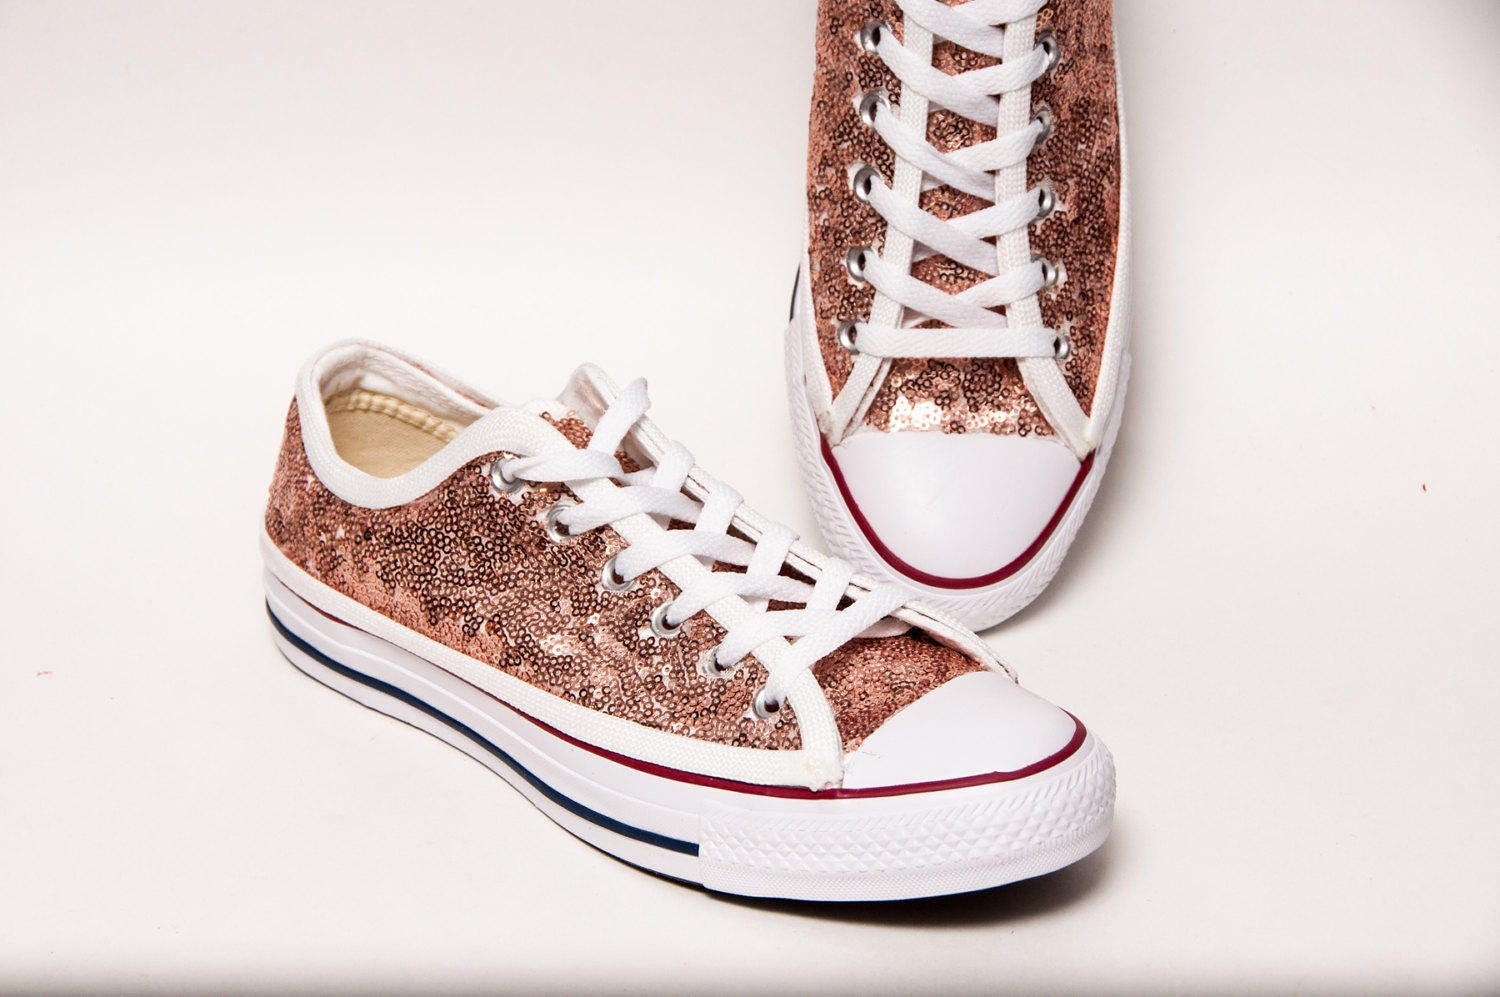 sequin rose gold canvas custom converse canvas low top. Black Bedroom Furniture Sets. Home Design Ideas